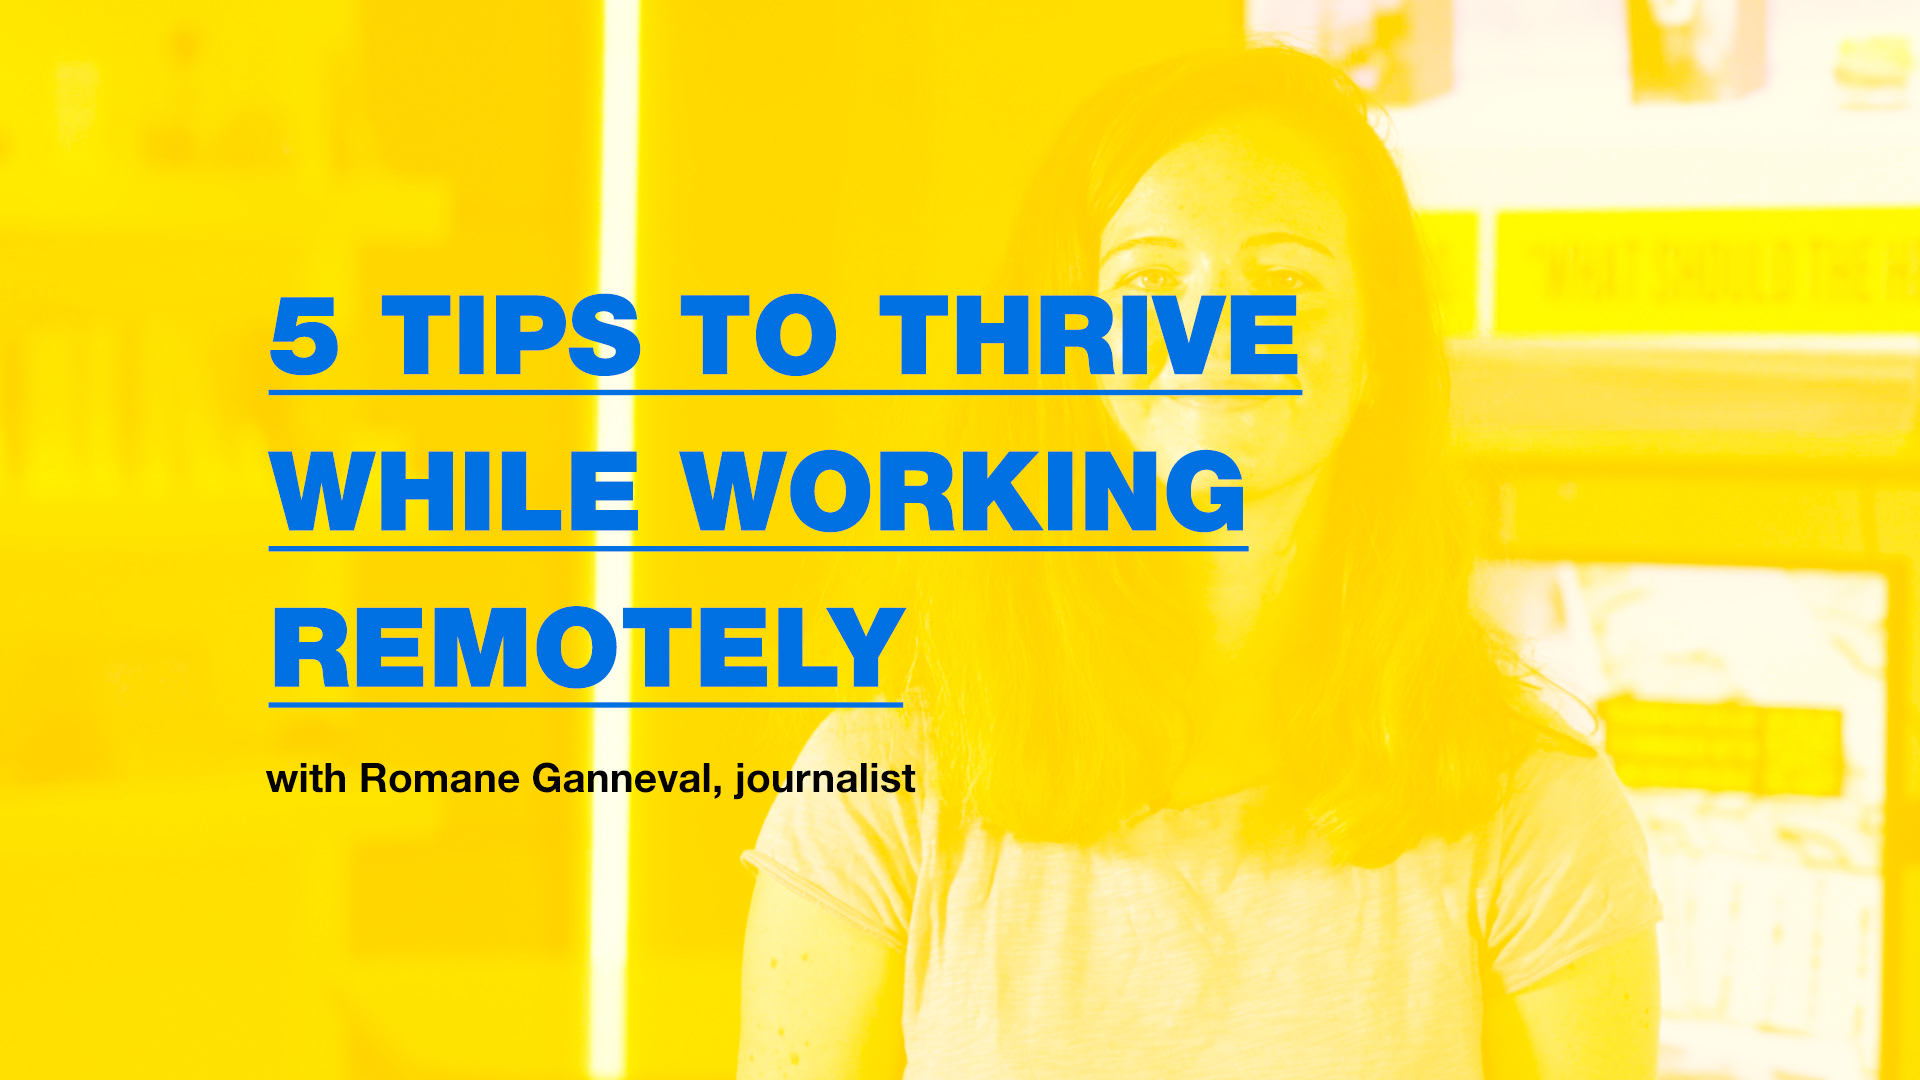 5 tips to thrive while working remotely |Klaxoon